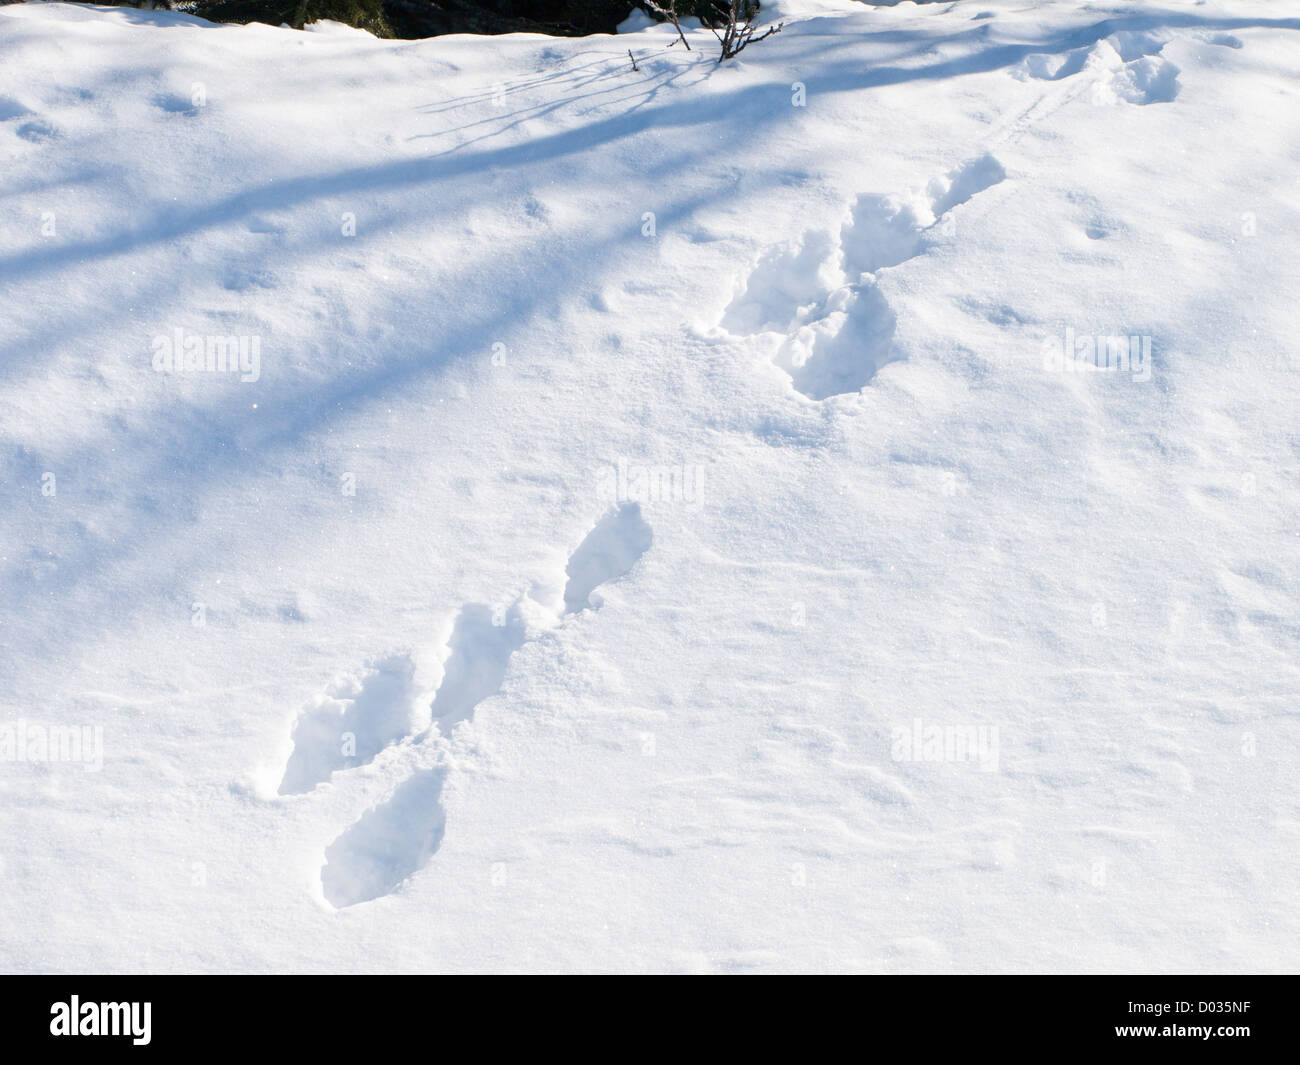 Tracks from hare in sunny winter snow - Stock Image